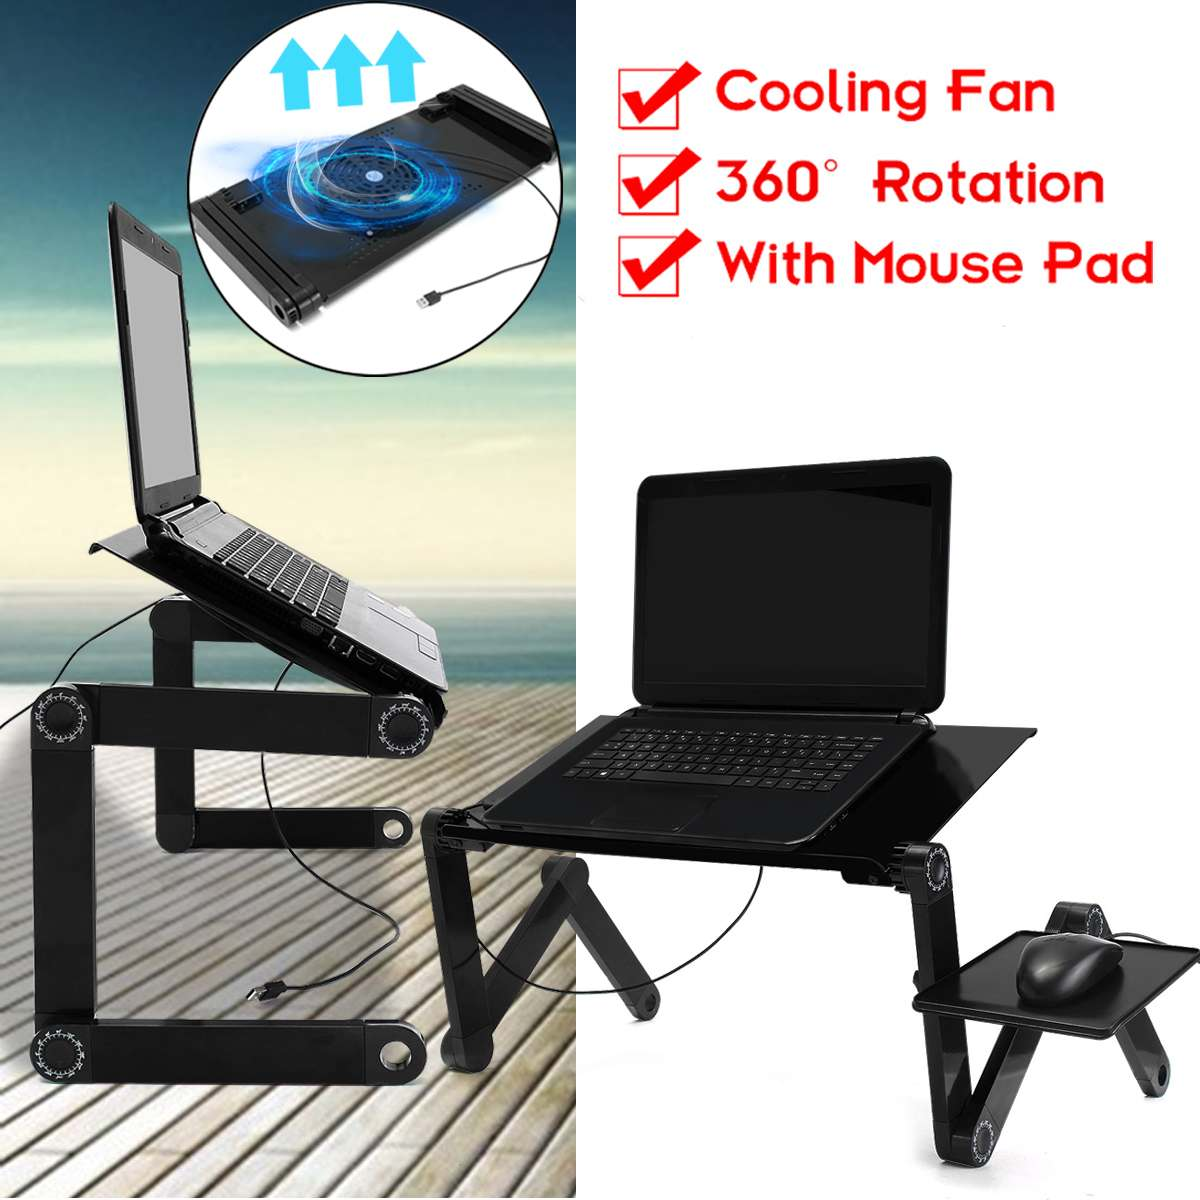 New Multi-function Lapdesk Laptop Desk Table Stand Bed Tray Portable Laptop Stand Aluminium Holder With Mouse Pad USB Cooler